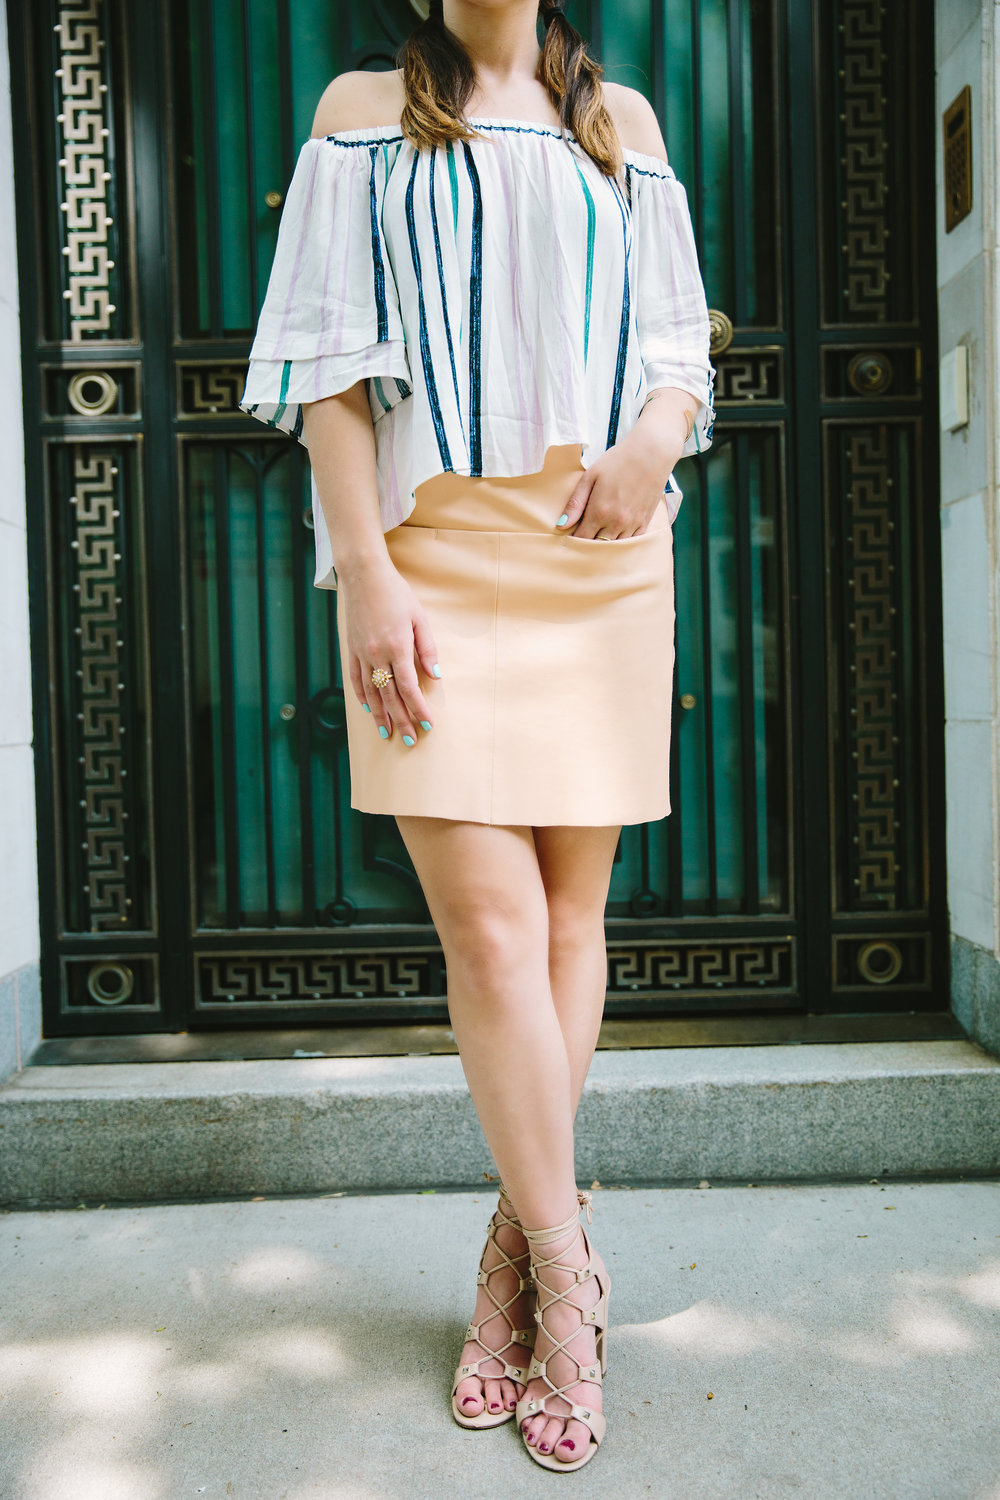 Striped Off-The-Shoulder Shoulder Top Shop Trescool Louboutins & Love Fashion Blog Esther Santer NYC Street Style Blogger Outfit OOTD Mini Skirt Pastel Pink Trendy Ivanka Trump Nude Lace Up Heels Gold Ring Hairstyle Boxer Braid Inspo Summer Photoshoot.jpg